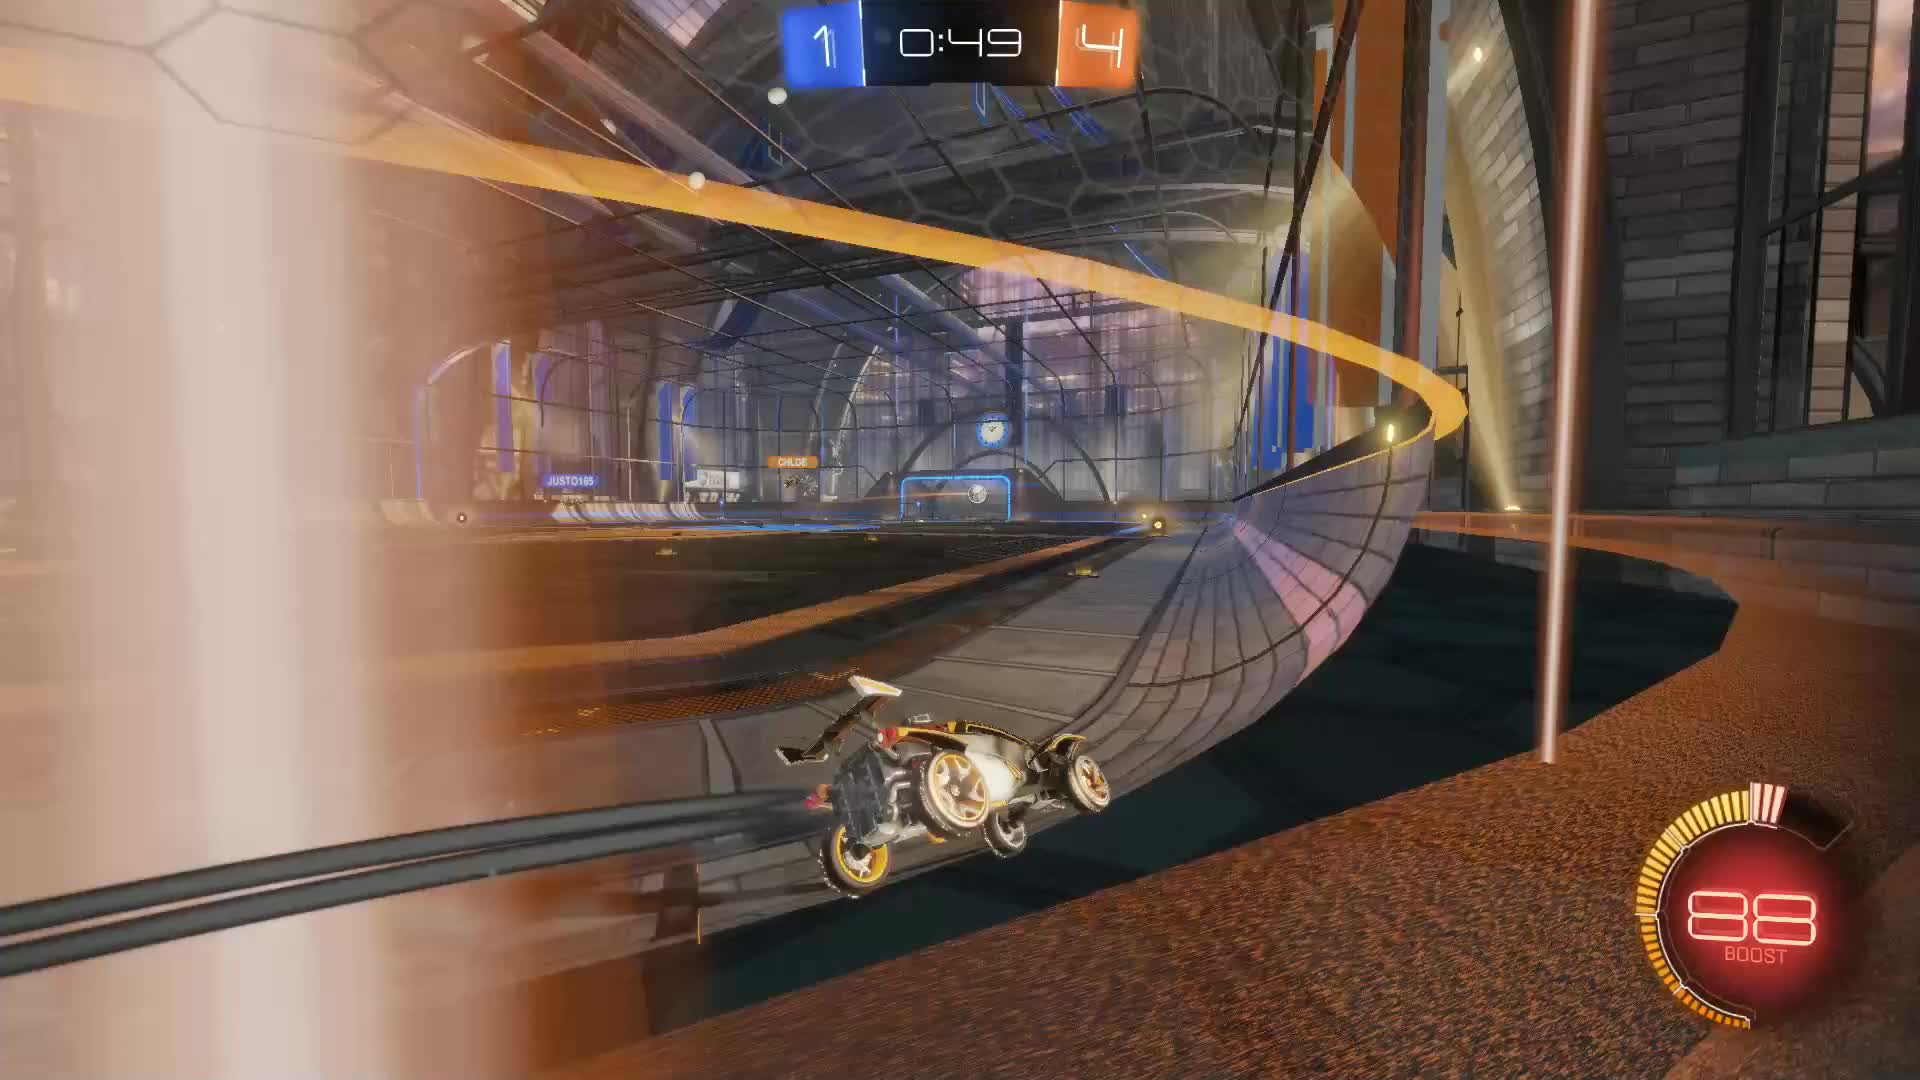 Gif Your Game, GifYourGame, Goal, Michel Platinium, Rocket League, RocketLeague, Goal 6: Michel Platinium GIFs